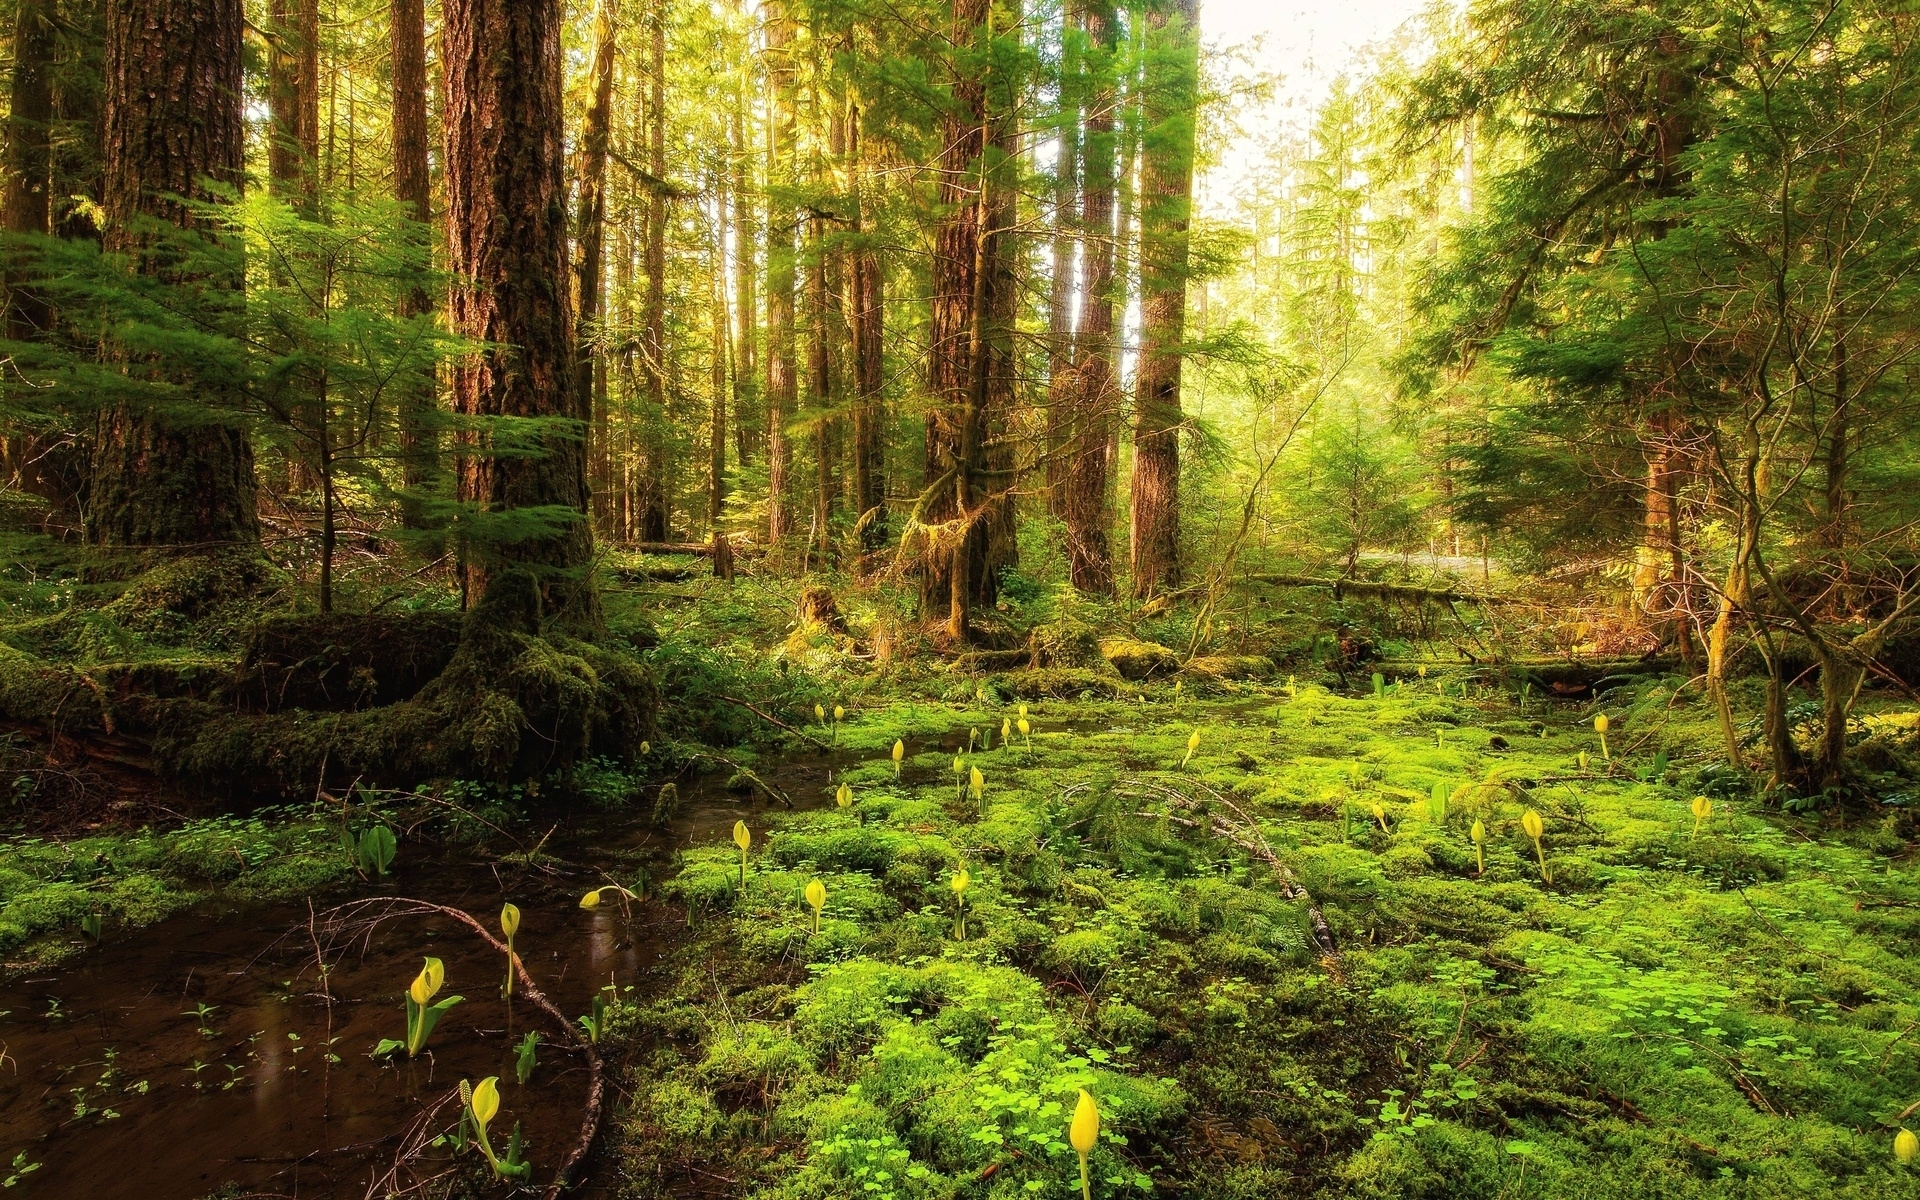 Forest Animated Wallpaper Forest Plants Water Sunny Wallpapers Forest Plants Water